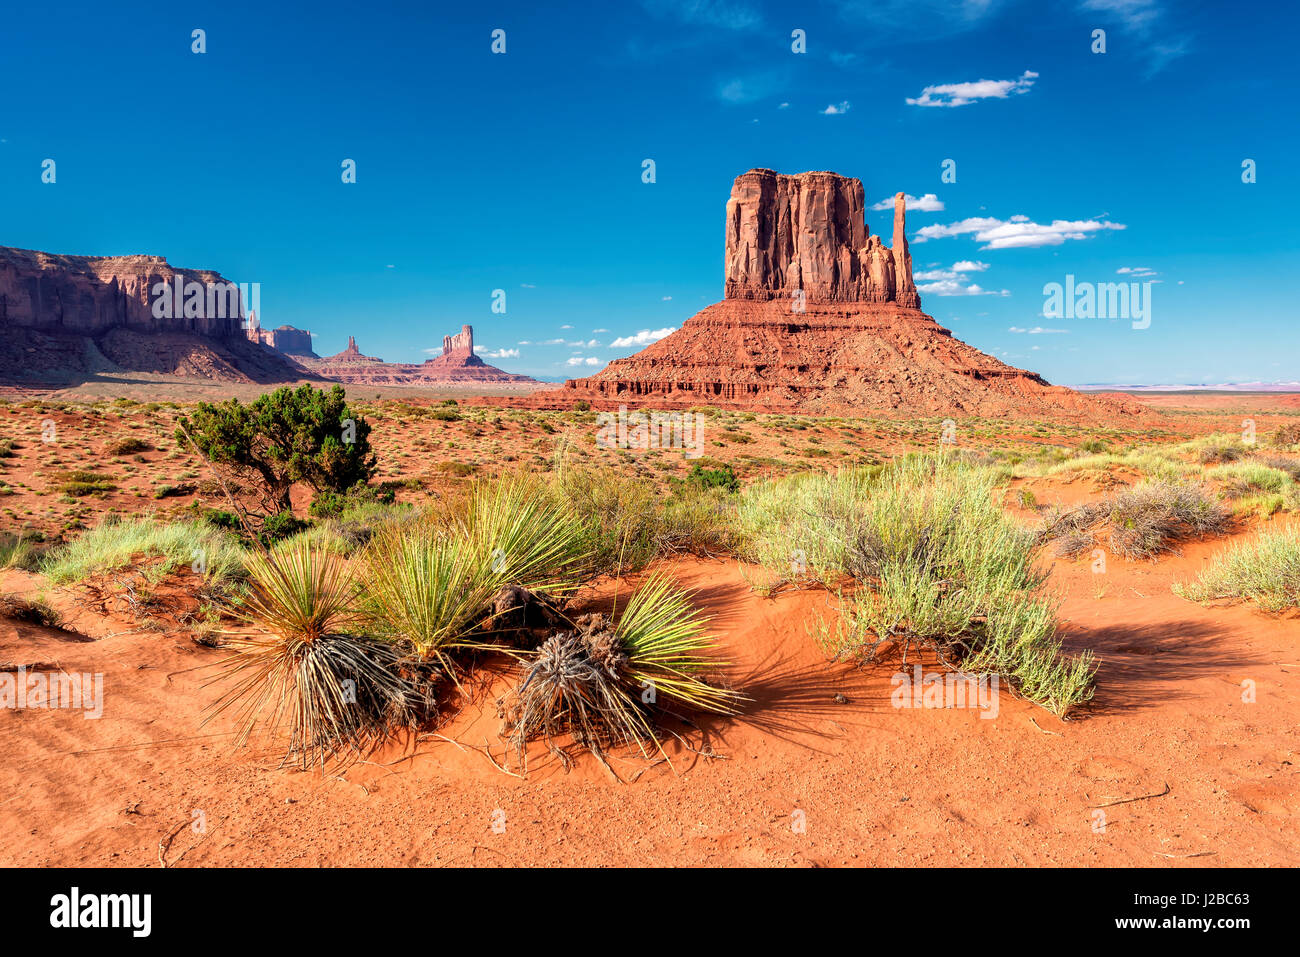 Beautiful Monument Valley, Arizona - Stock Image